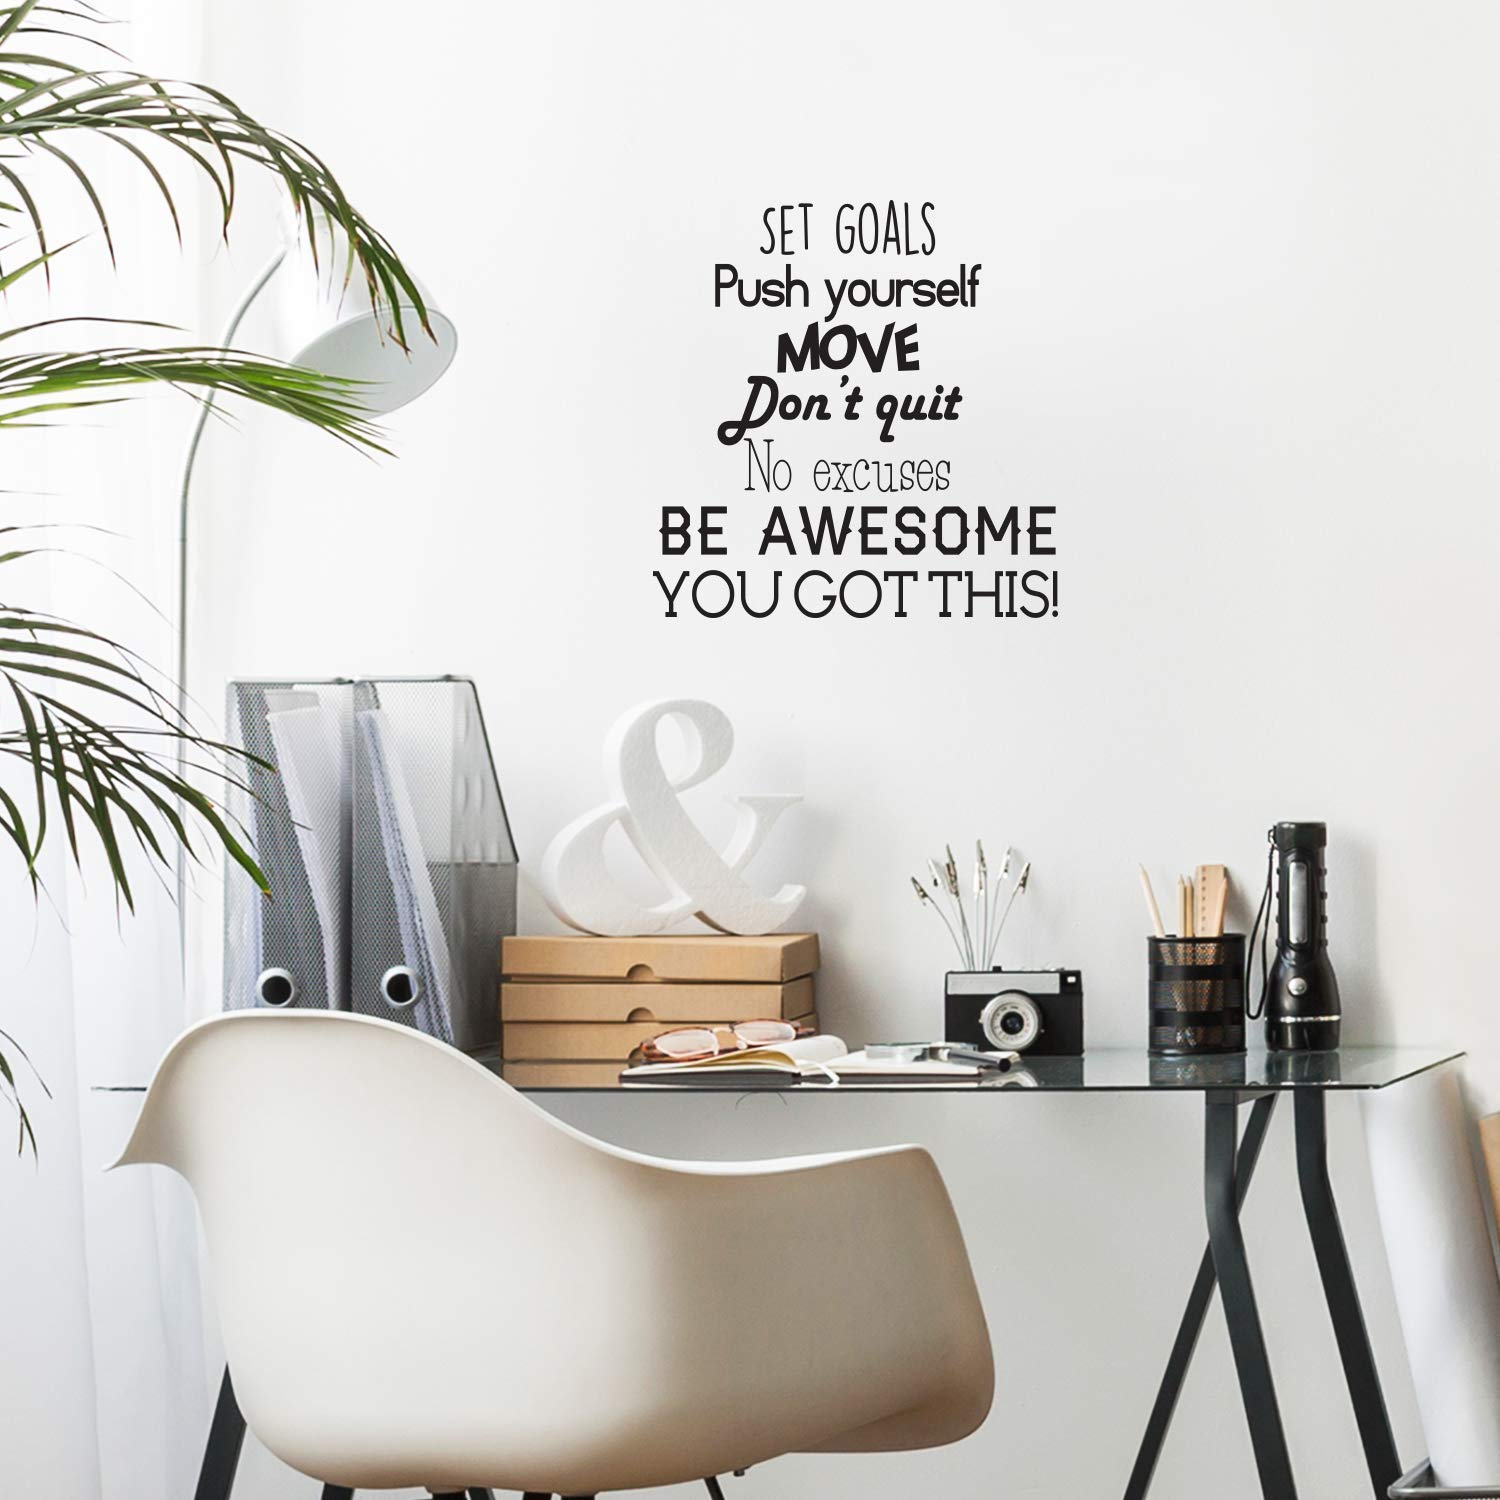 Set Goals, Push Yourself, Don't Quit - Inspirational Quotes Wall Art Vinyl Decal - 24'' x 23'' Gym Quotes Decoration Vinyl Sticker - Motivational Wall Art Decal - Life Quotes Vinyl Sticker Wall Decor